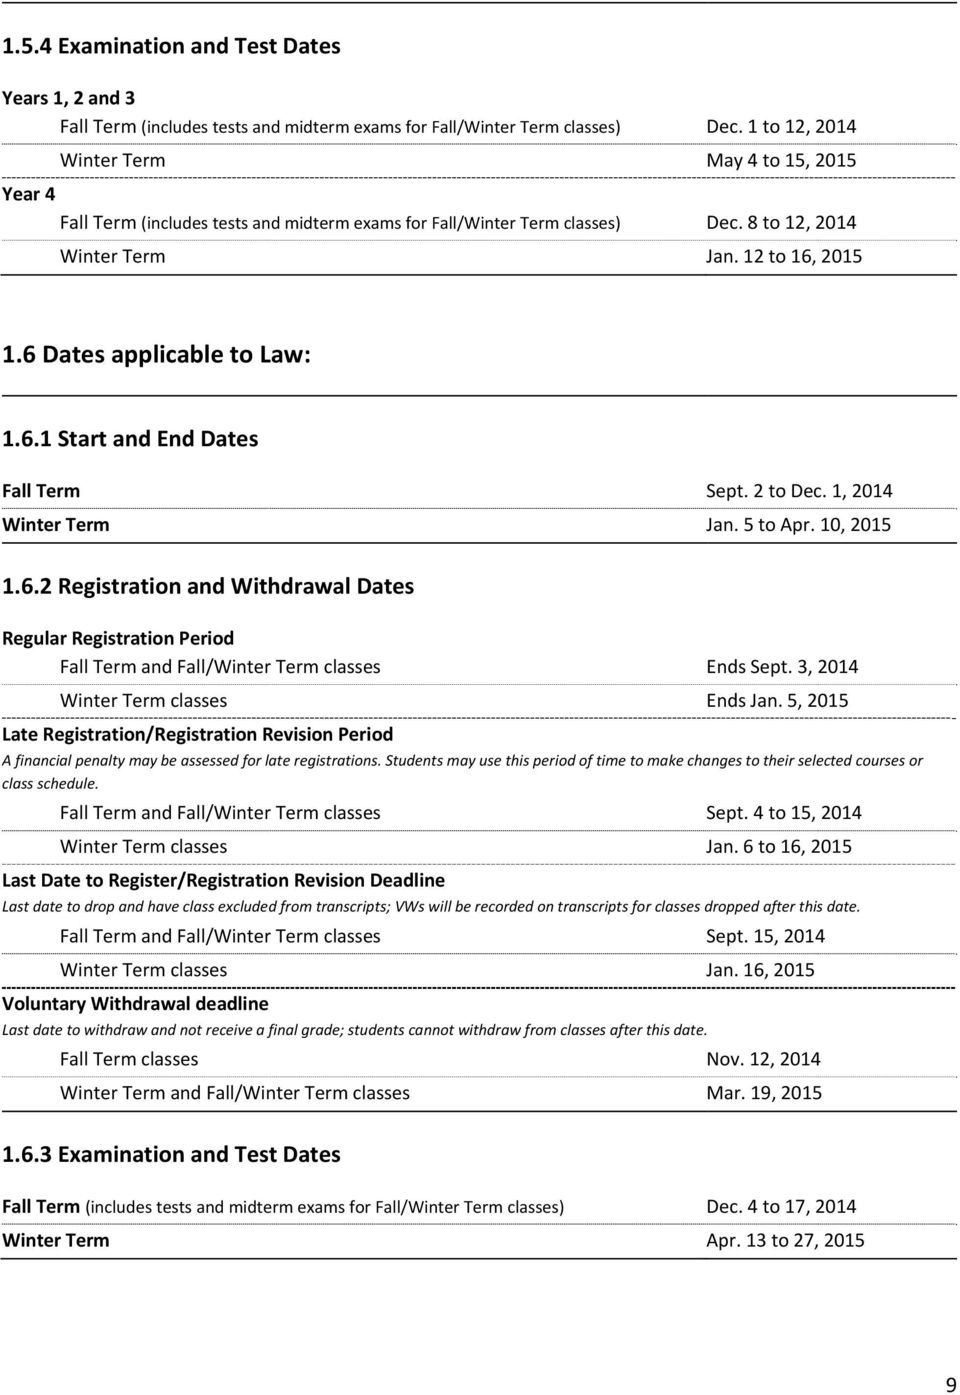 6 Dates applicable to Law: 1.6.1 Start and End Dates Fall Term Sept. 2 to Dec. 1, 2014 Winter Term Jan. 5 to Apr. 10, 2015 1.6.2 Registration and Withdrawal Dates Regular Registration Period Fall Term and Fall/Winter Term classes Ends Sept.